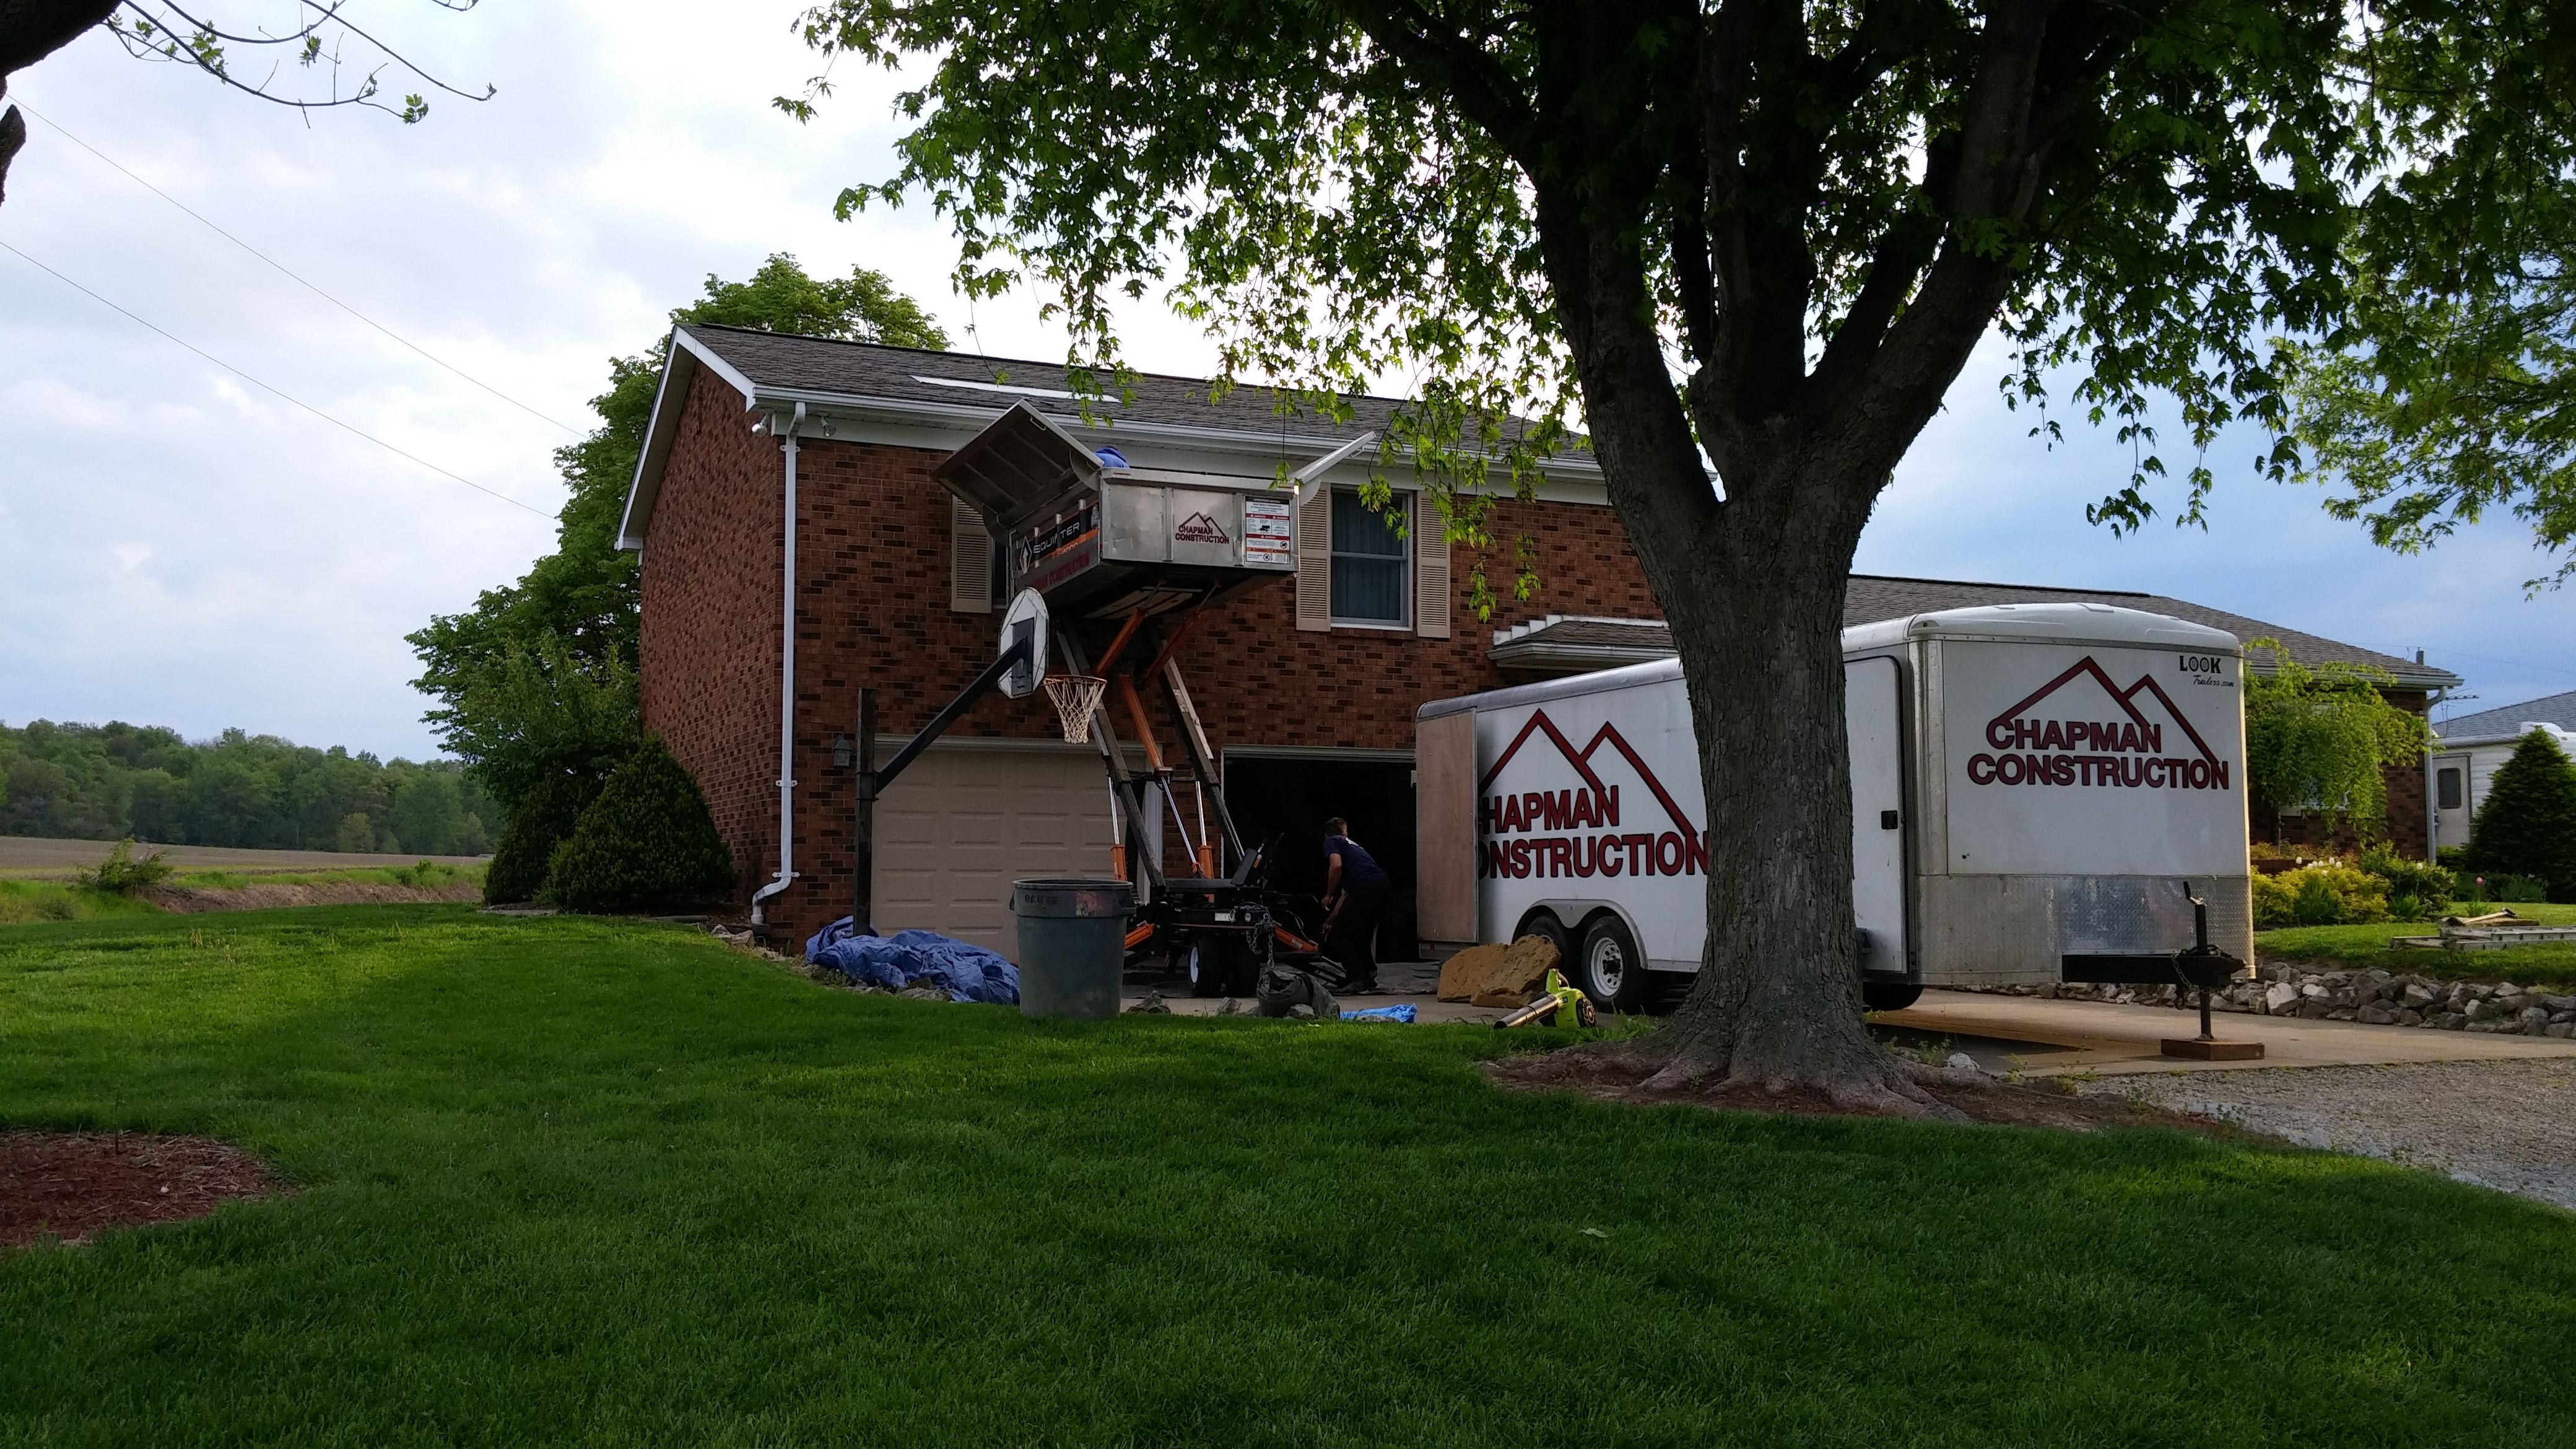 Evansville Roofing, Siding, Gutters Chapman Construction